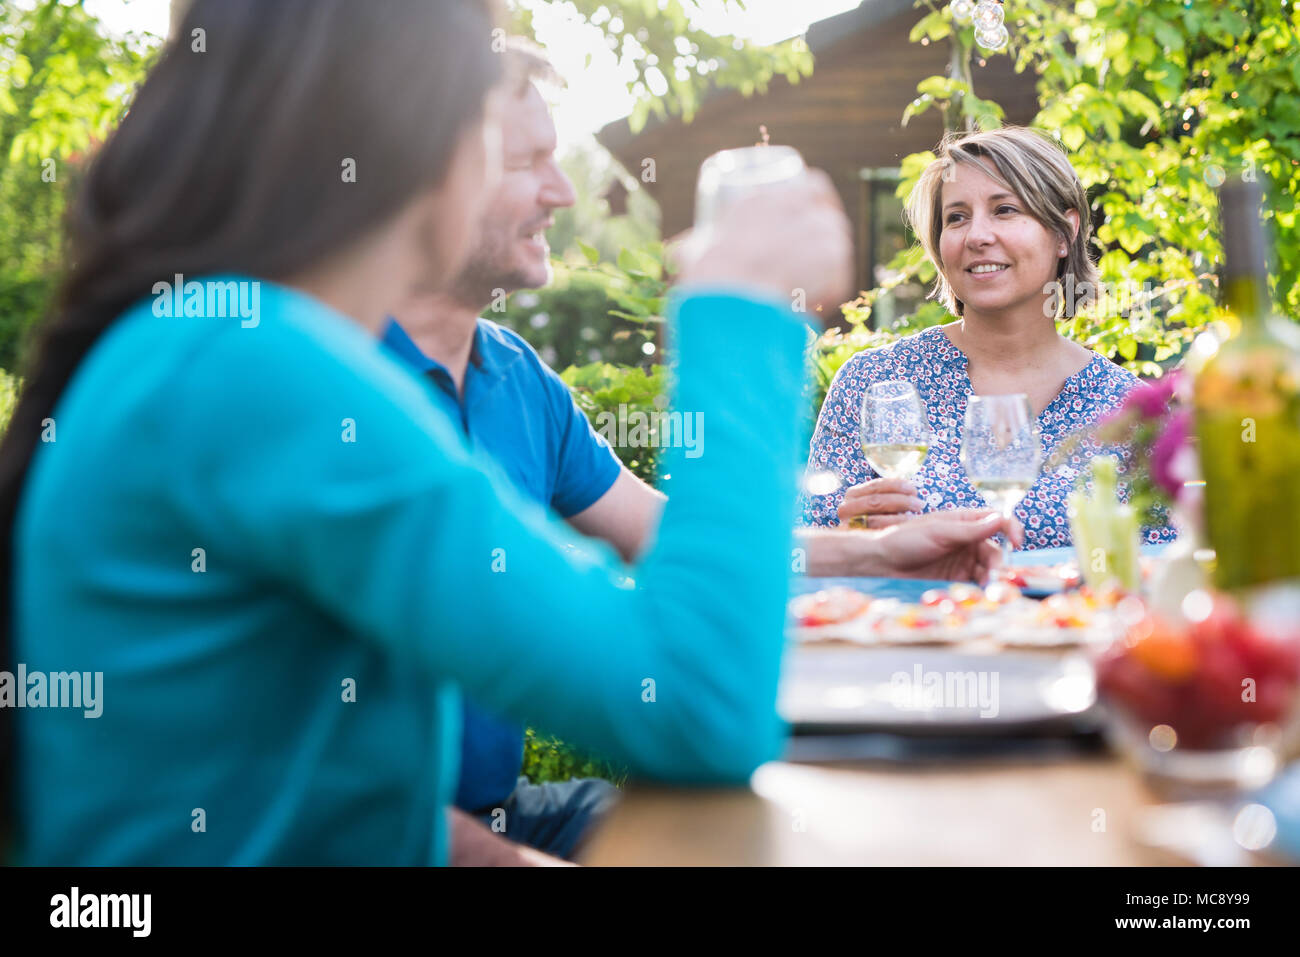 Friends gathered around a table in the garden one summer evening to share a meal and have fun together. - Stock Image